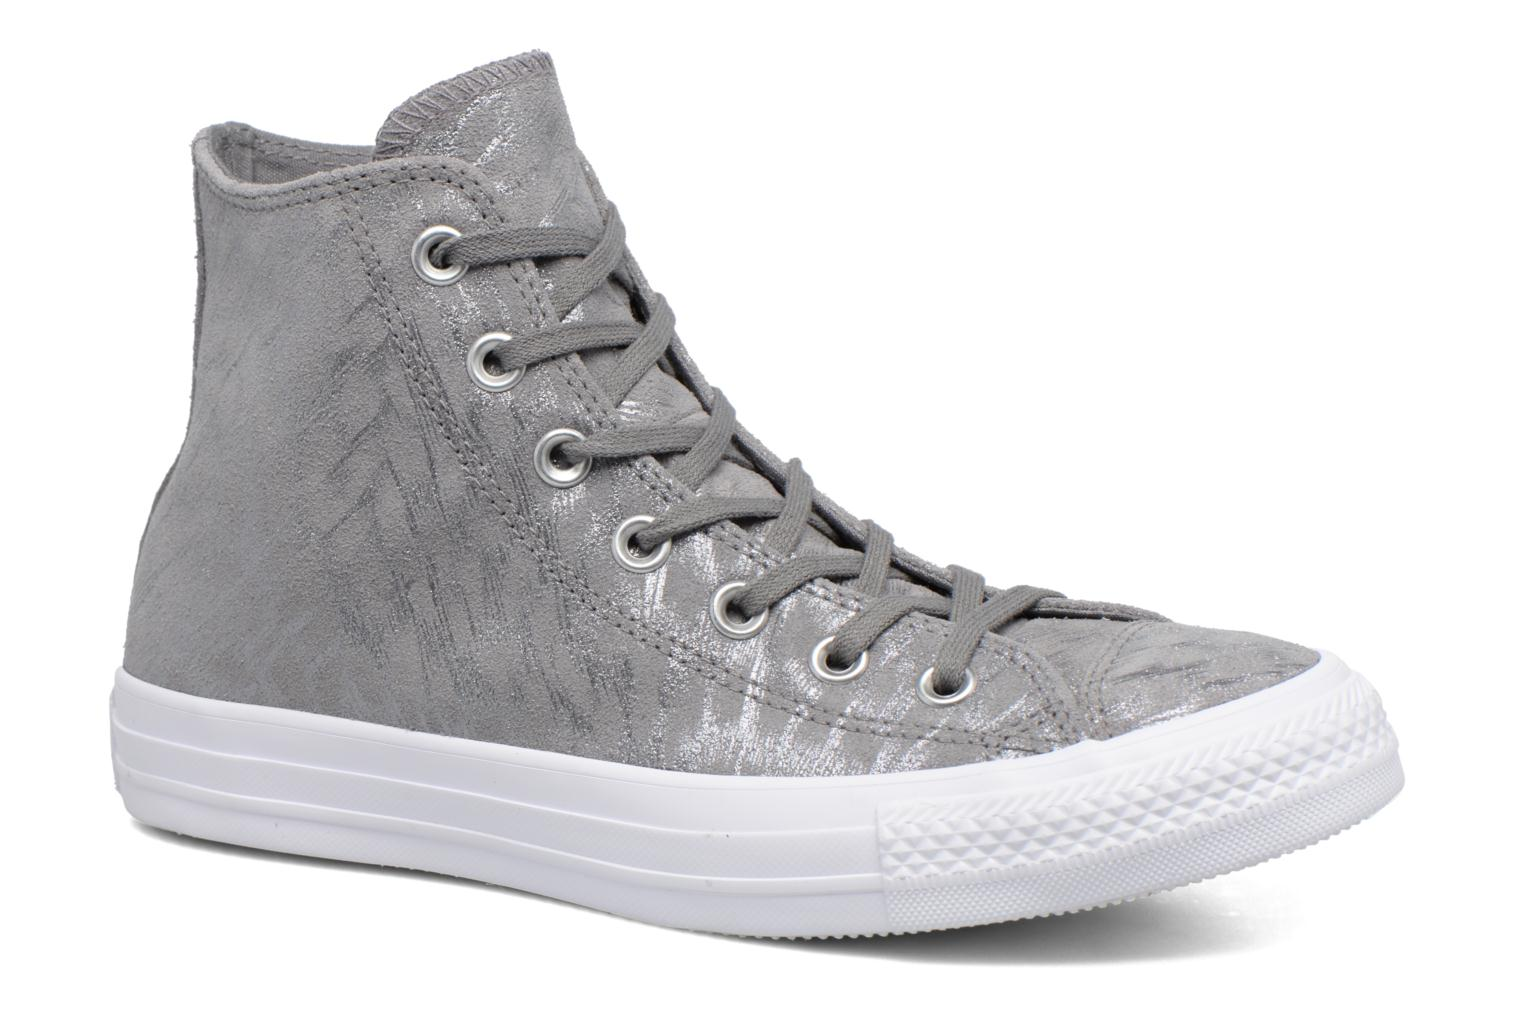 Chuck Taylor All Star Shimmer Suede Hi by Converse